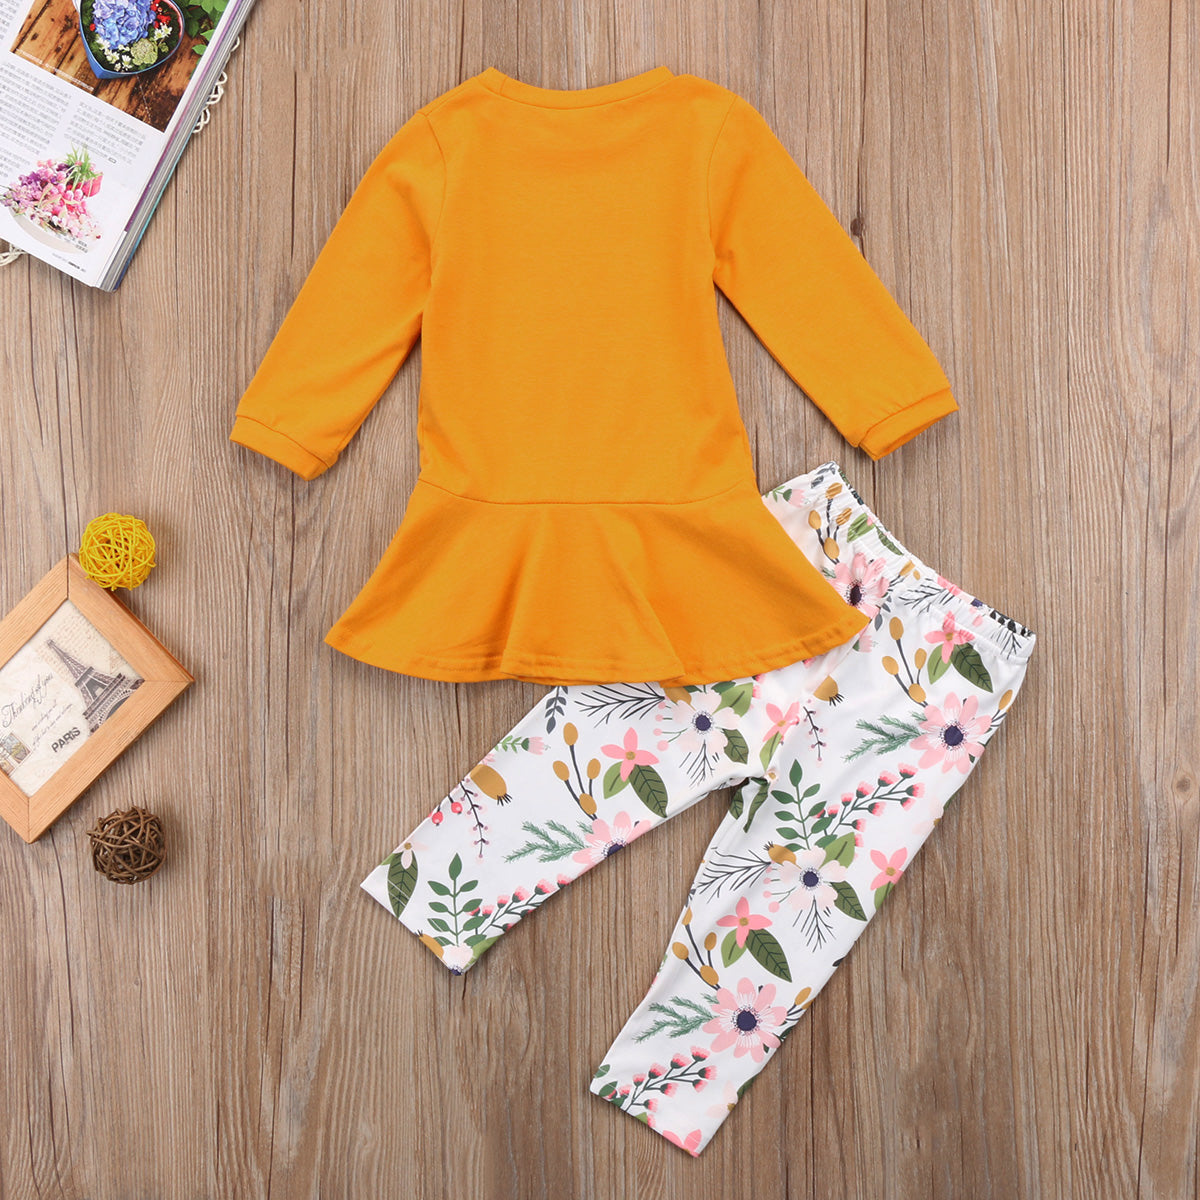 Baby Girl Dress+Leggings Set clothes 2-7y - Jeybeauty